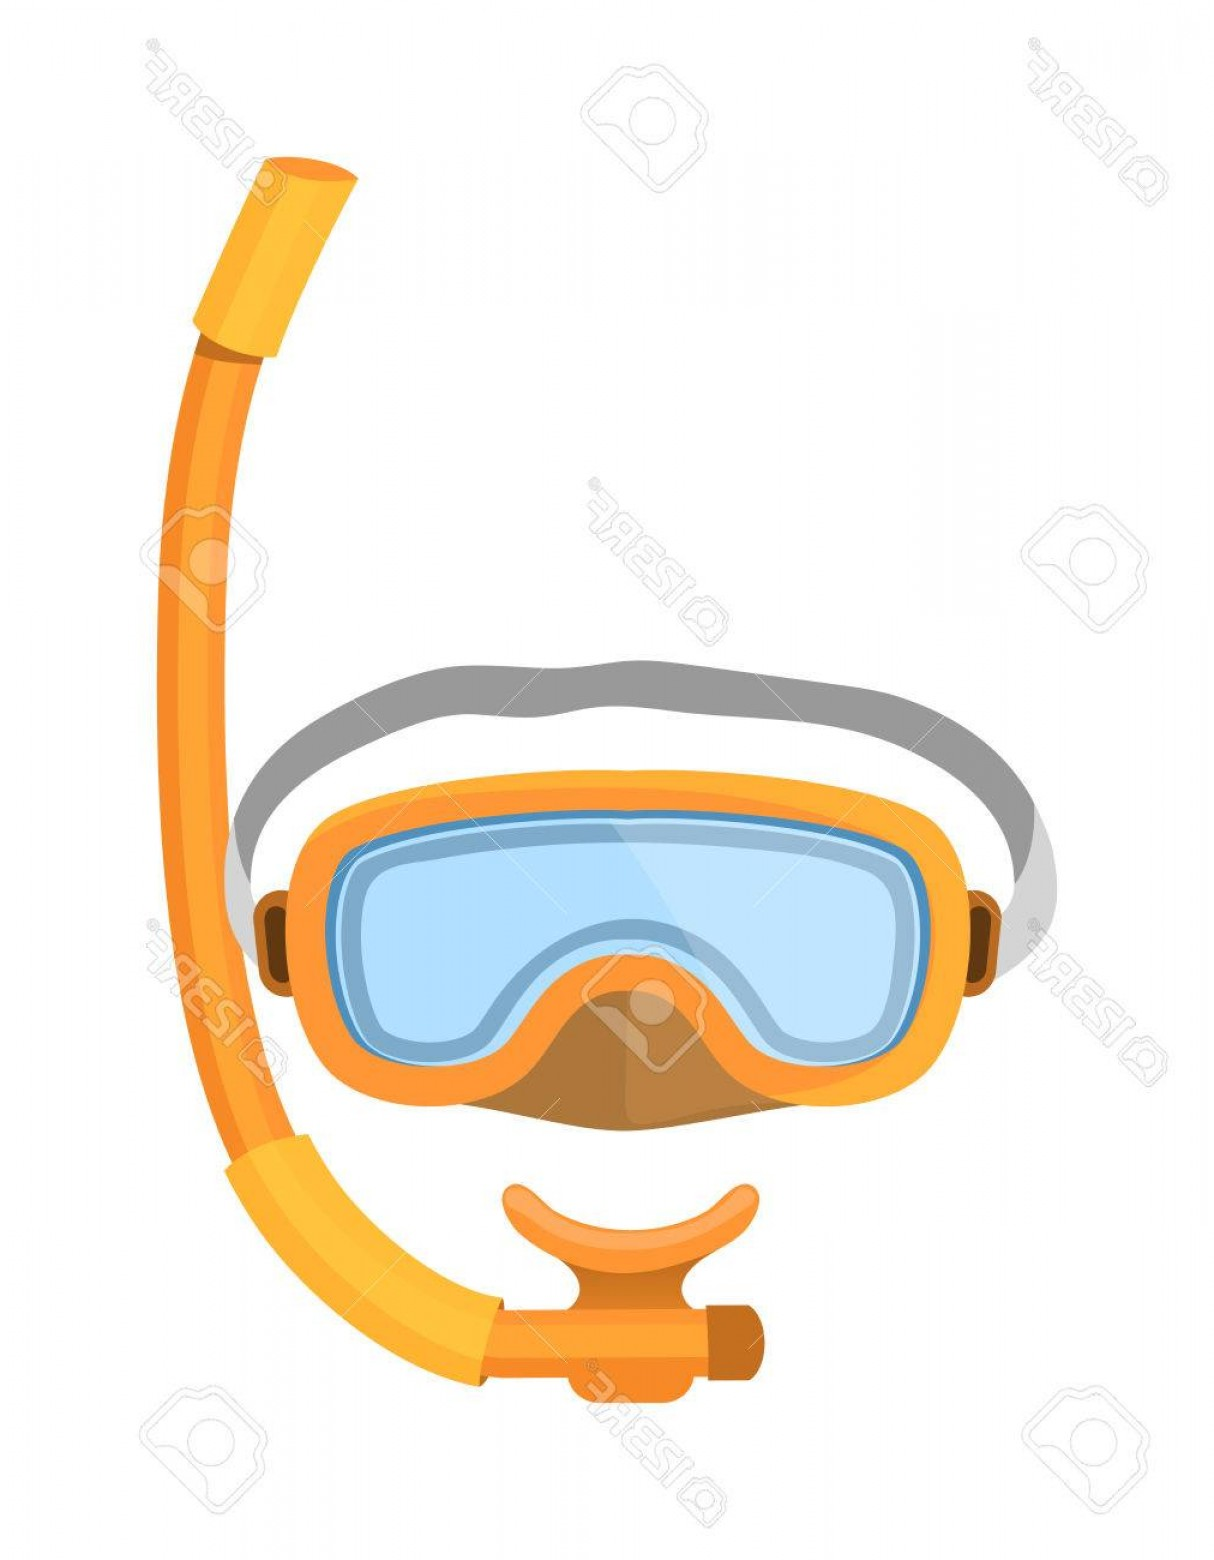 Dive Mask E Vectors: Photostock Vector Scuba Diver Mask Vector Equipment Sport Underwater Diver Mask Vector Water Sea And Diving Vector Fla